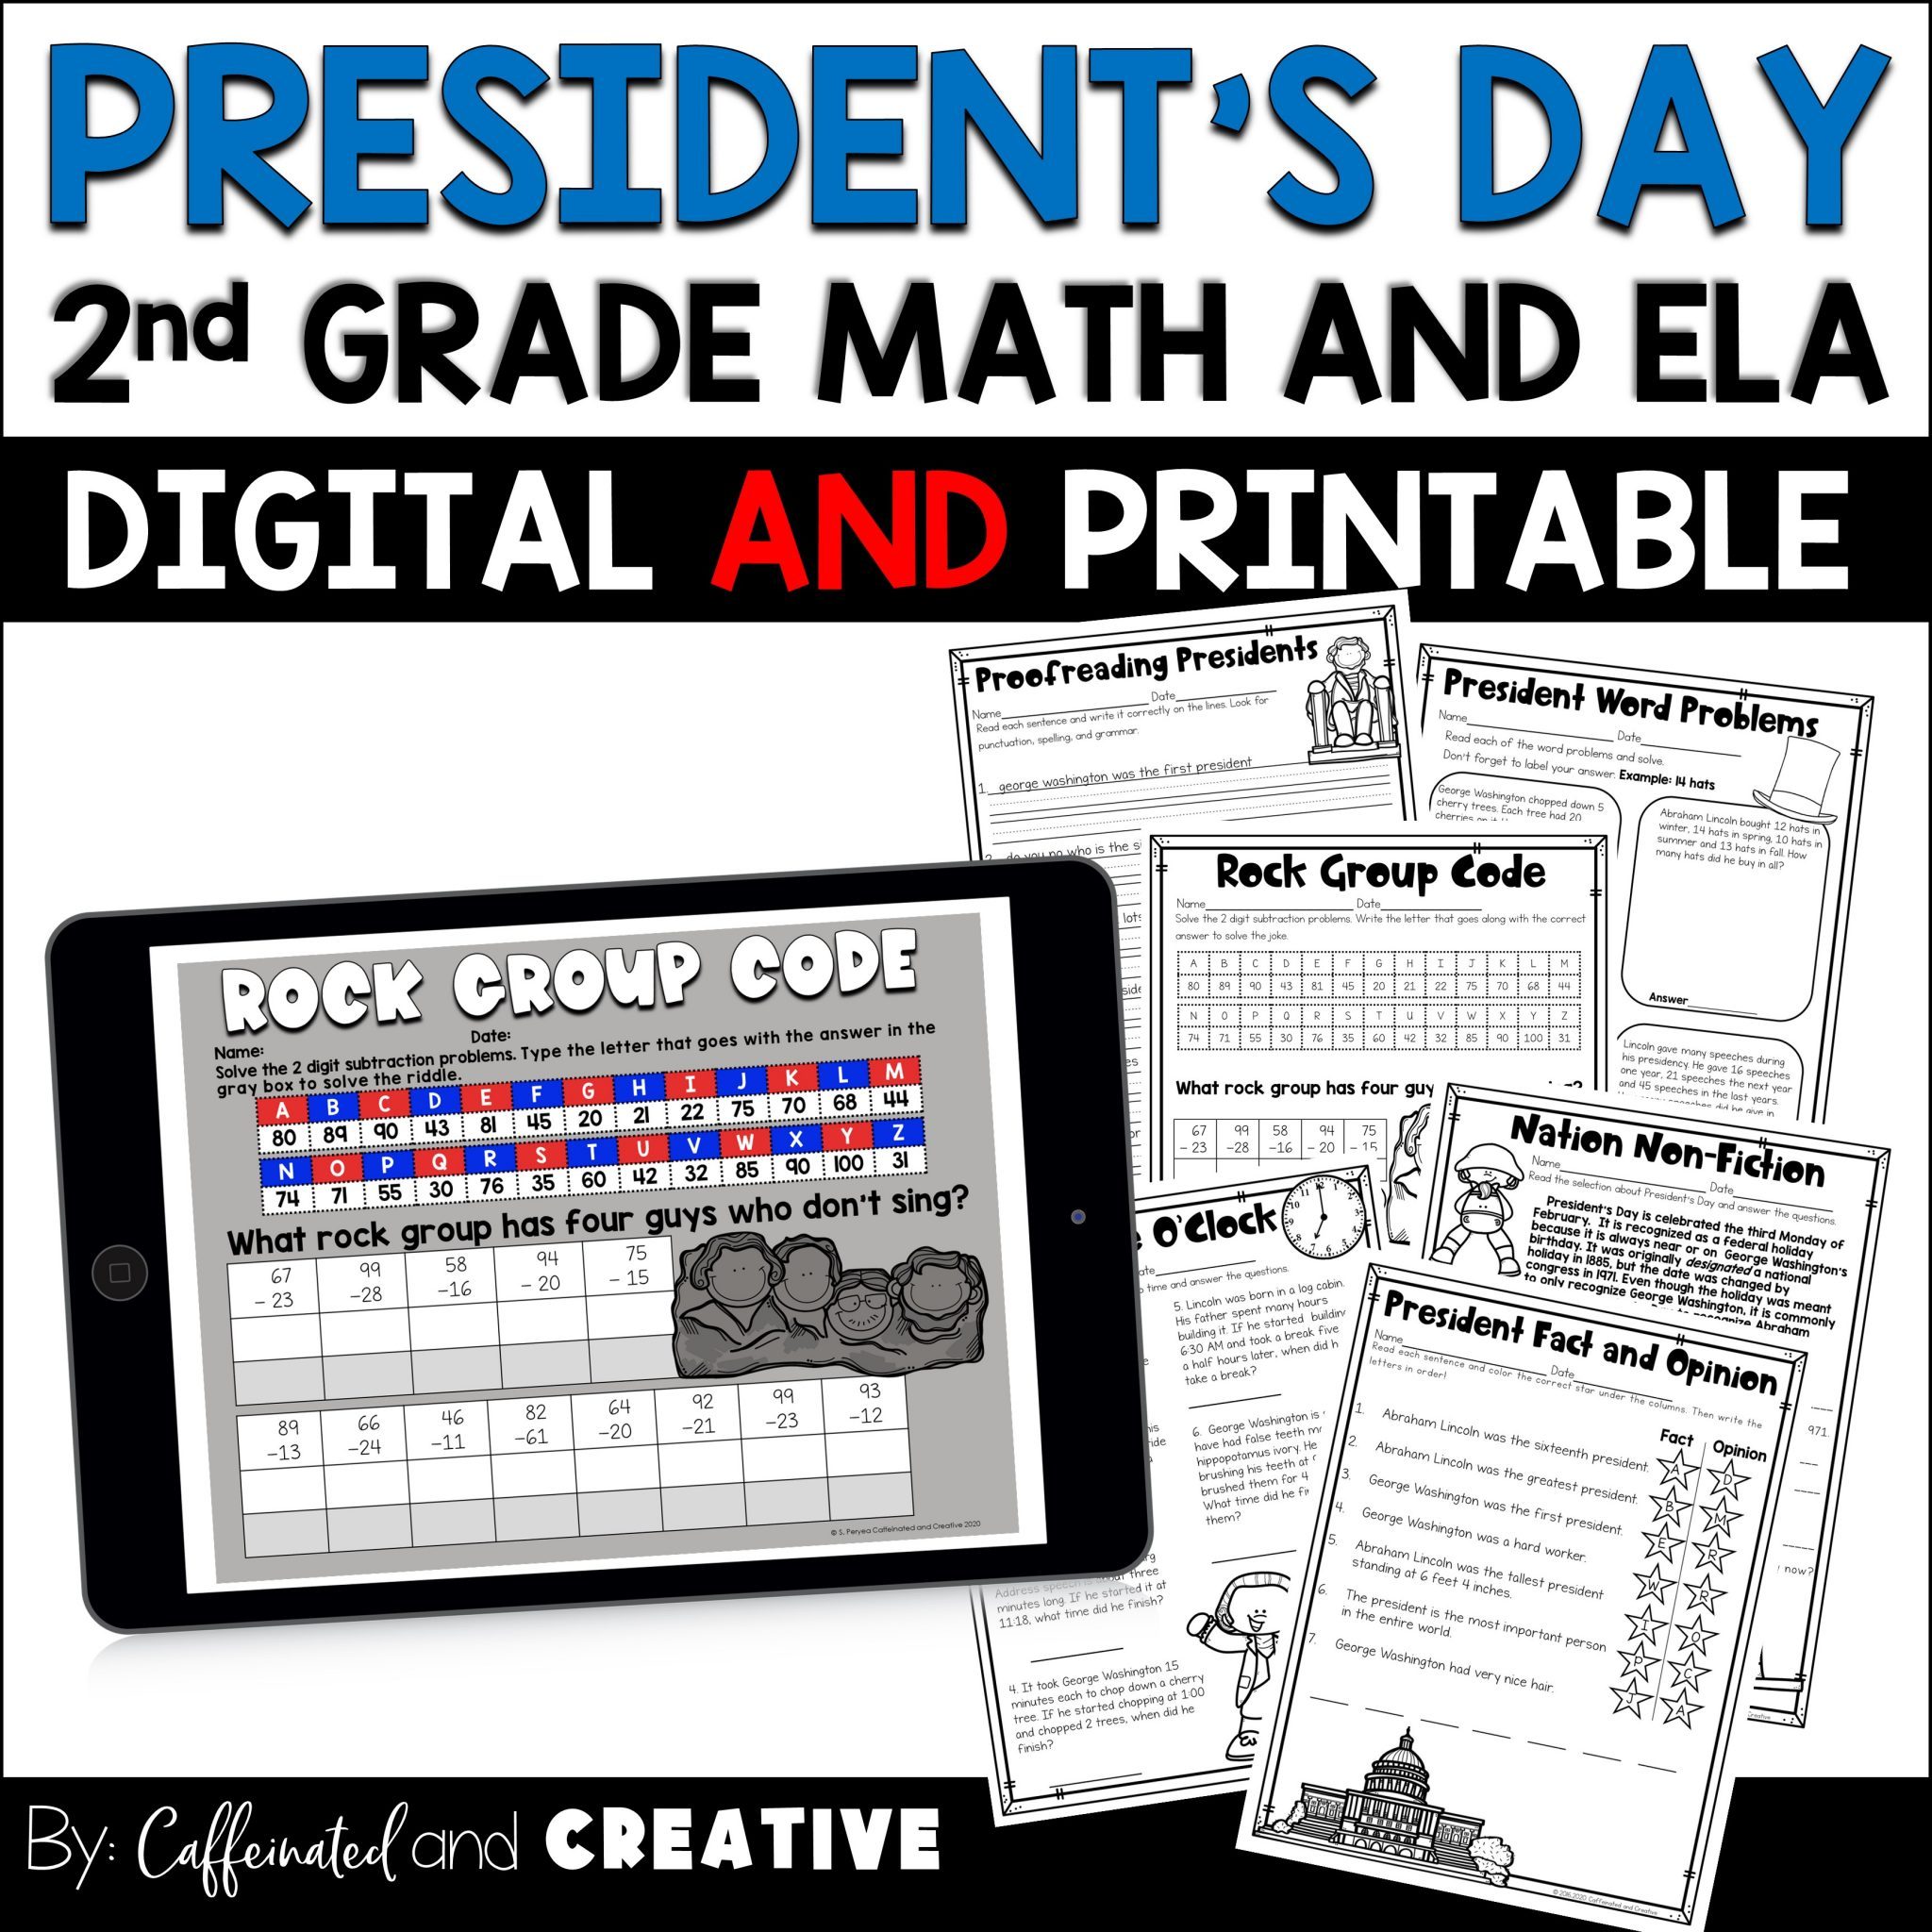 President's Day No Prep Mini Unit for Second Grade is perfect for fun and engaging activities on President's Day! This unit is apart of a Second Grade February No Prep ELA and Math Unit that includes Groundhog's Day, Chinese New Year, football and Valentine's Day as well! This unit is geared towards 2nd graders, but can also be used for talented first graders or third graders who may be struggling a bit. This product is meant to be a time saver. Just print! It can be used for homework, morning work, or even fun assessments!